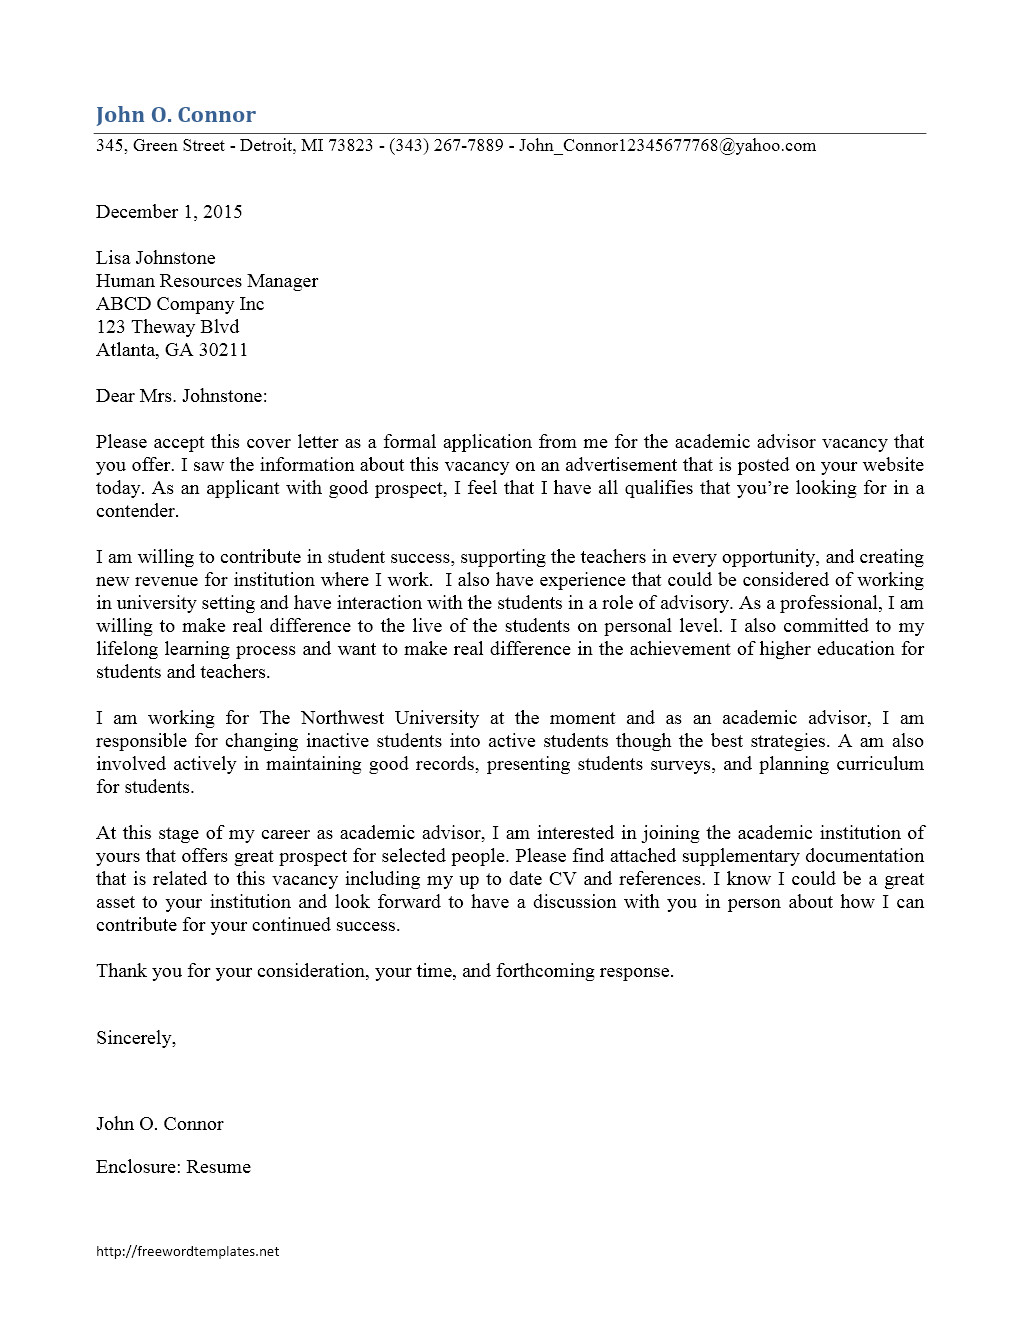 Cover Letter for College Academic Advisor Position Free Microsoft Word Templates Part 8